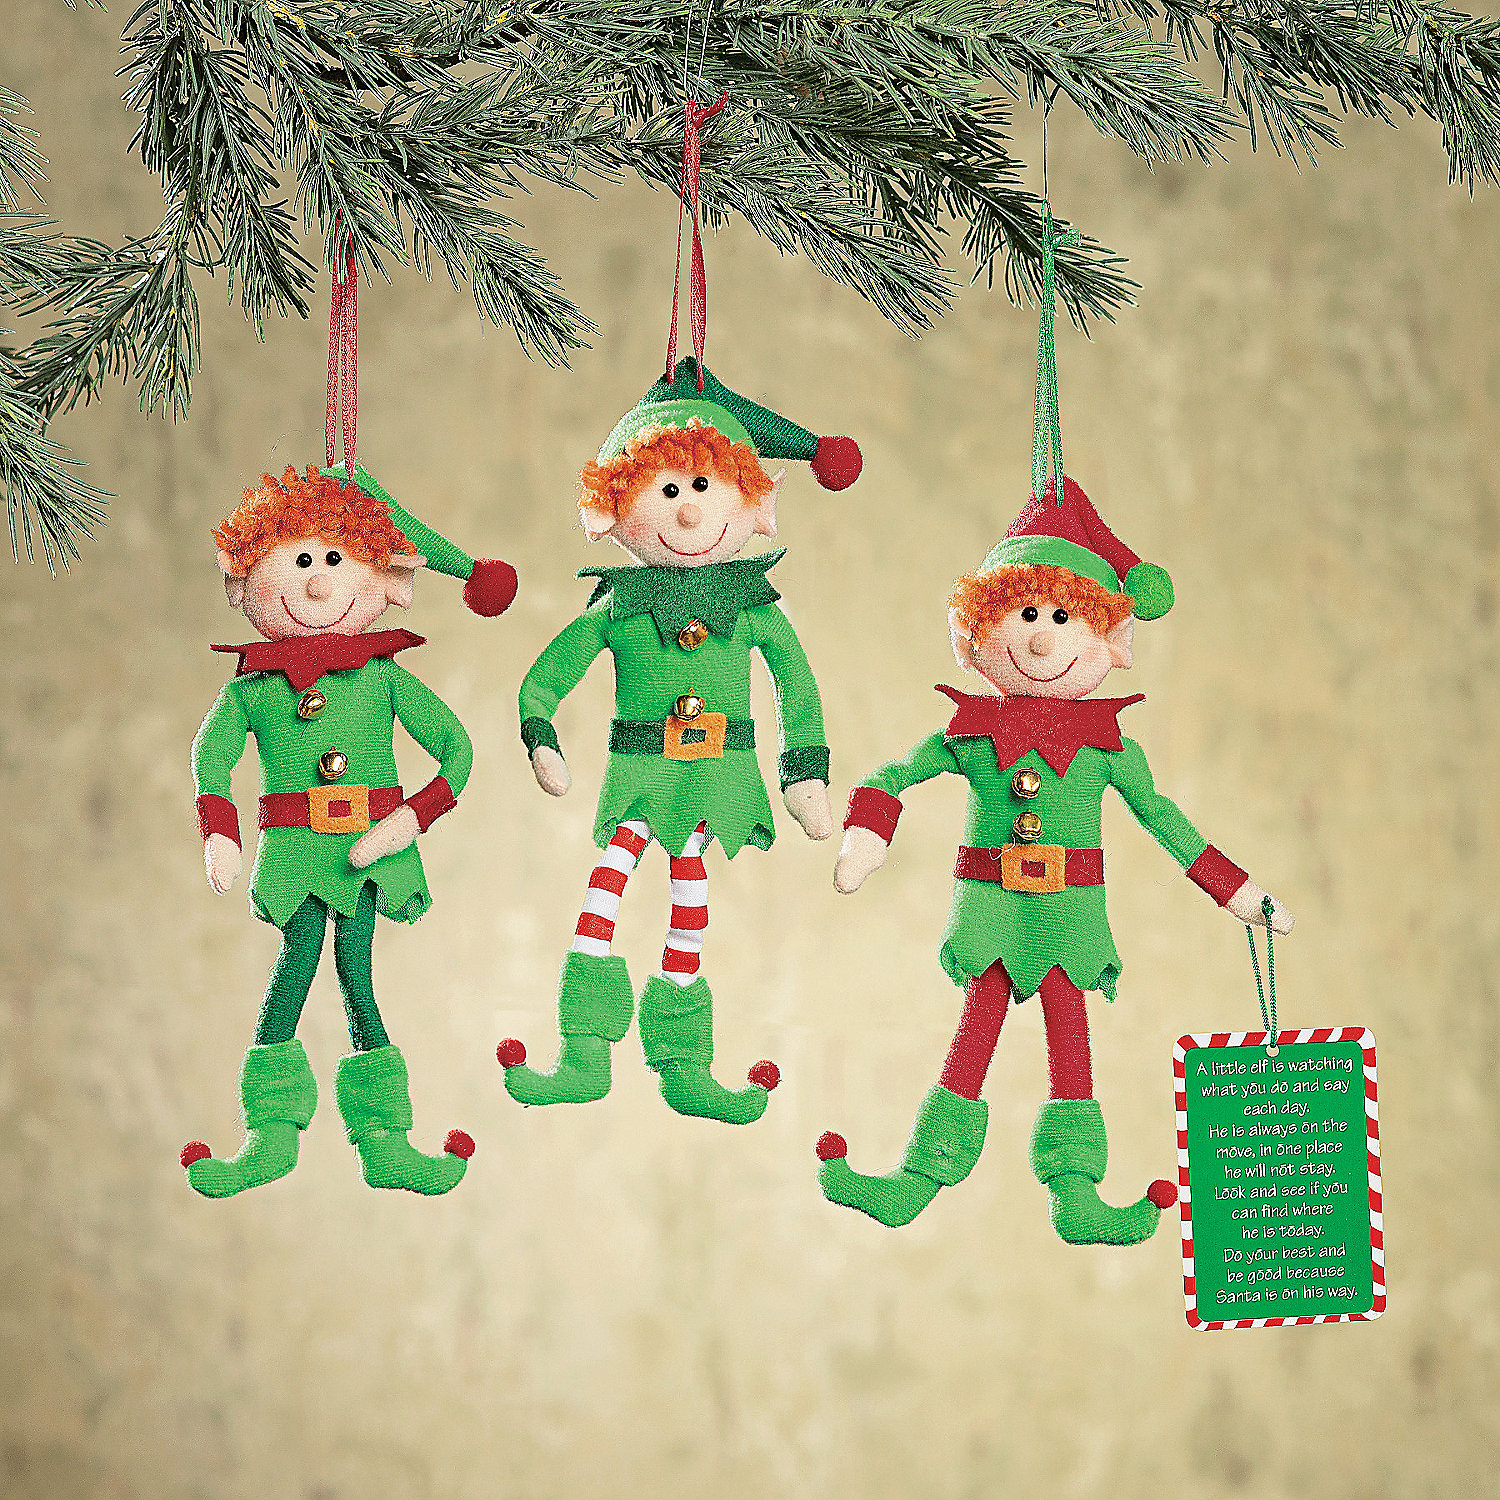 95 Amazing Outdoor Christmas Decorations: Home Decor, Accents, Holiday Decorations & Accessories